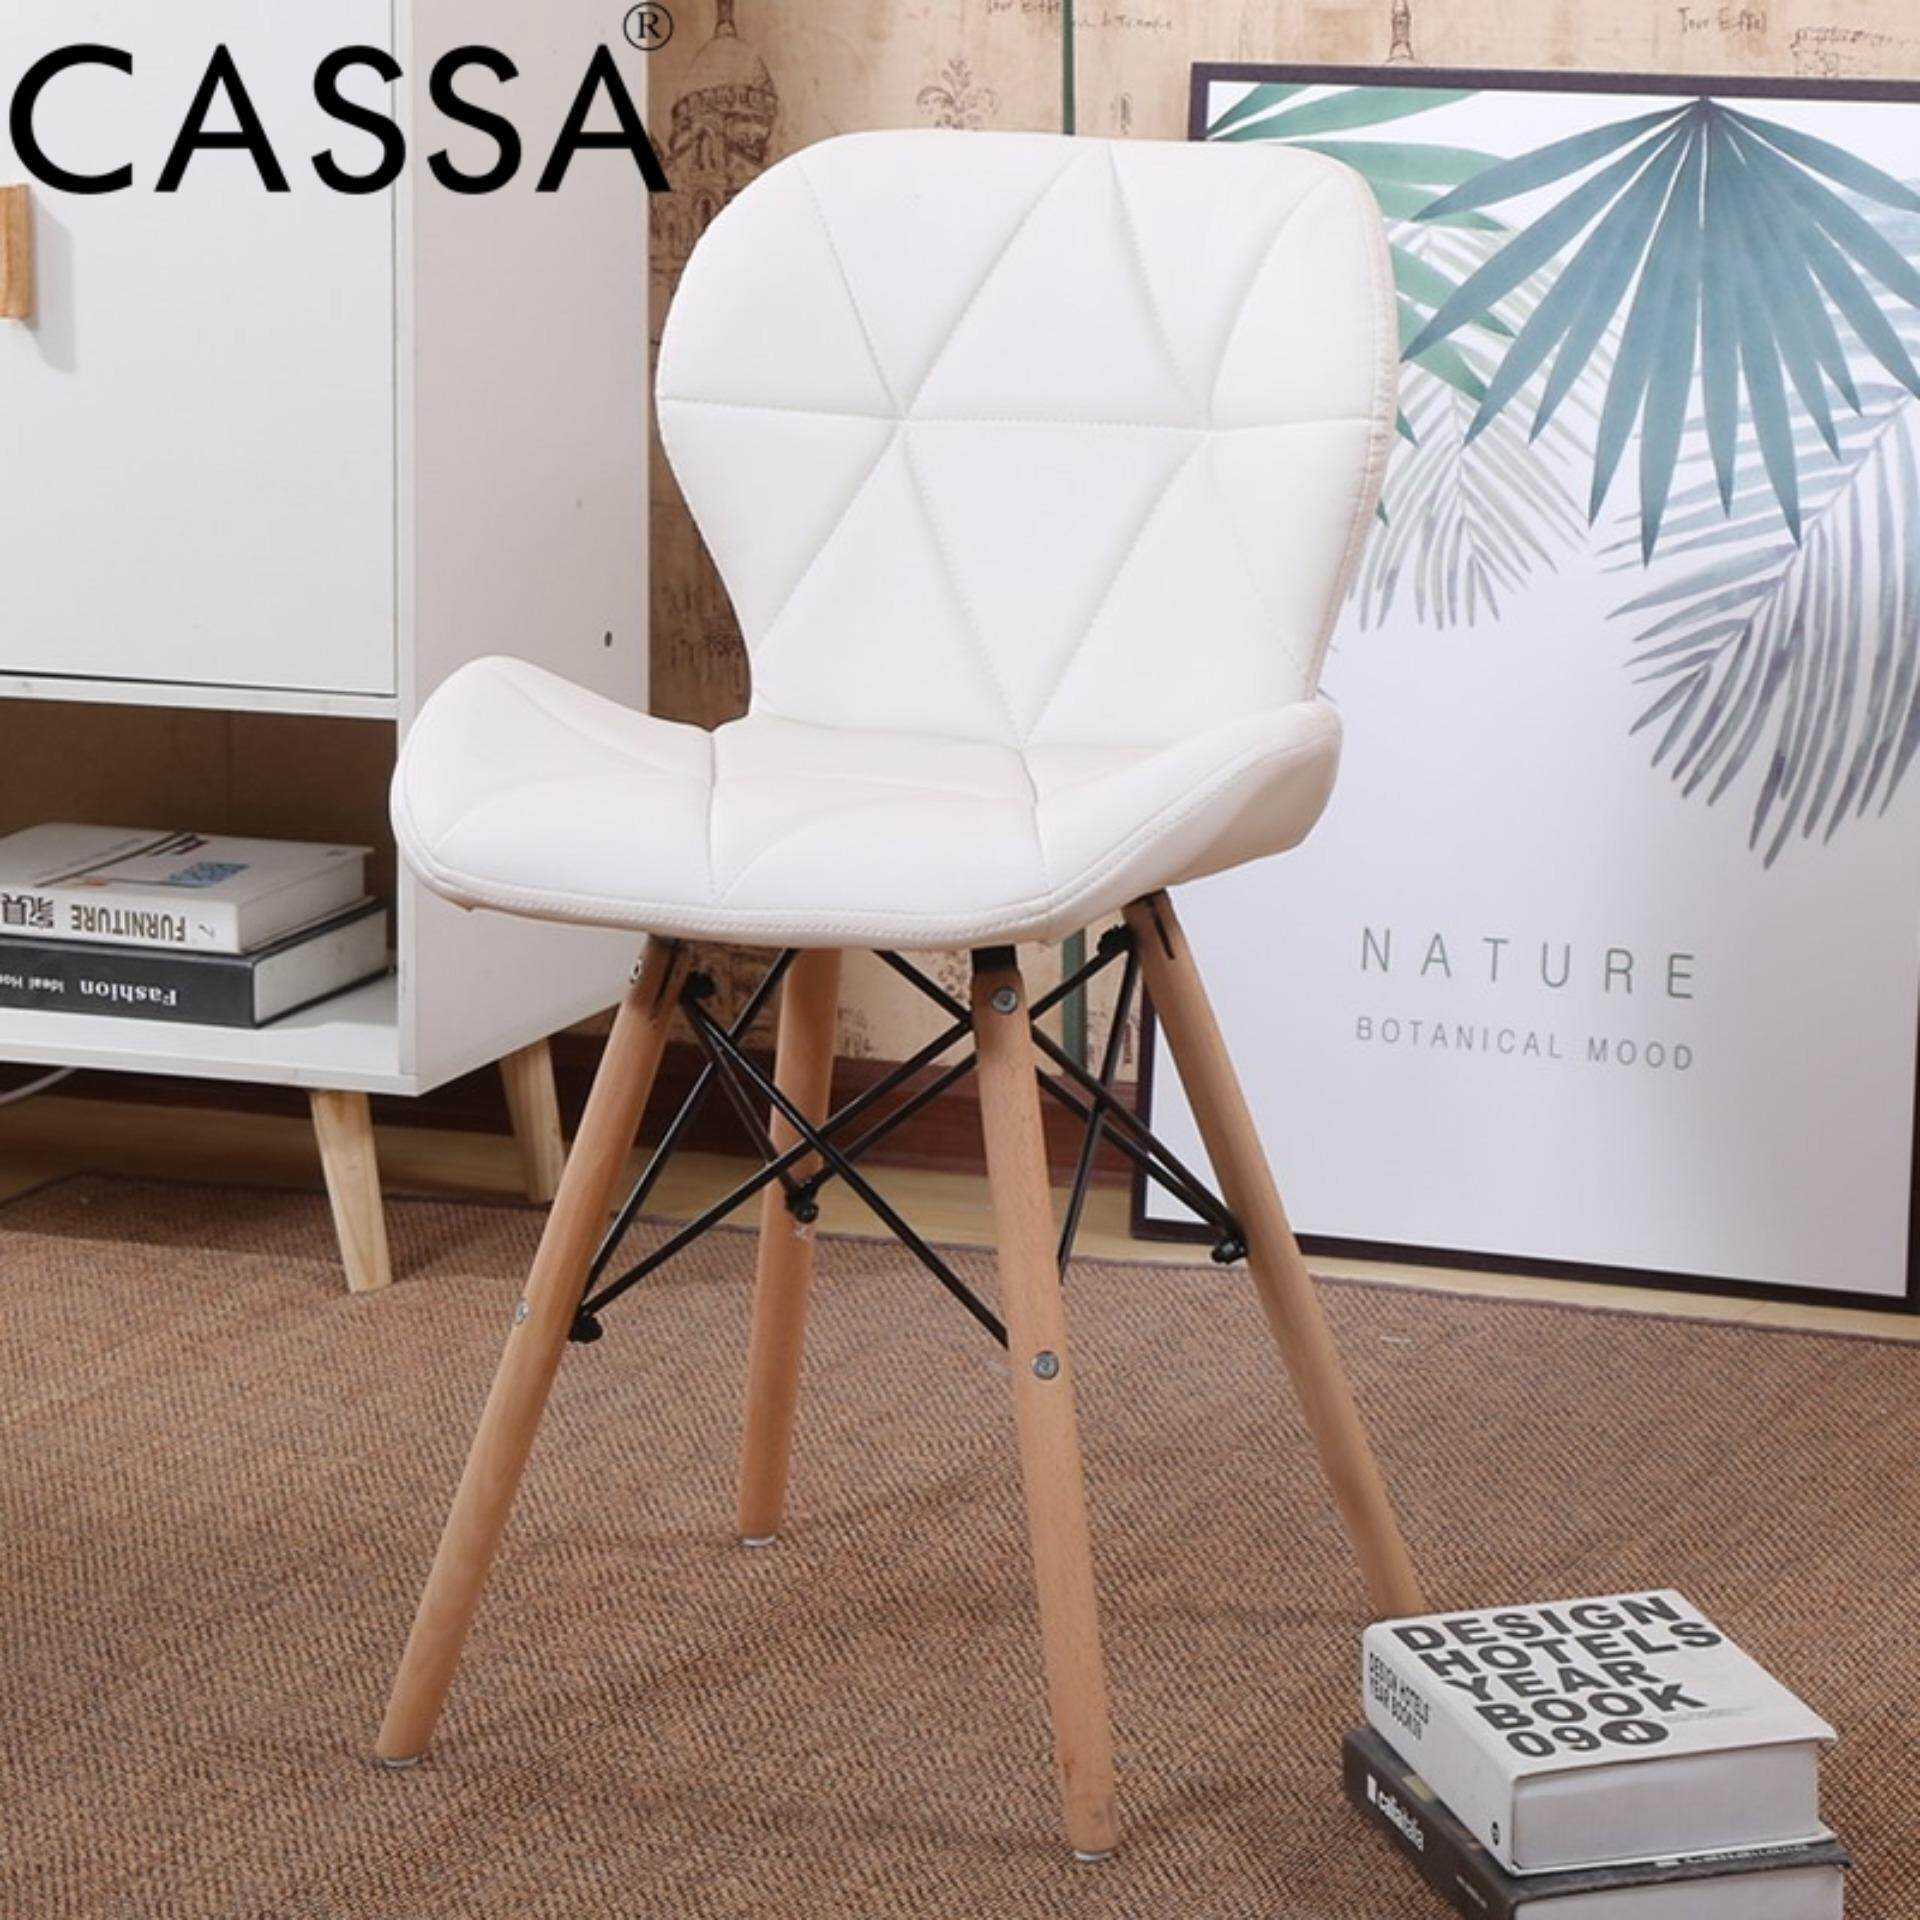 eames chair leather. Cassa Eames Chair White Faux Leather Cushion Seat Natural Wood Legs Malaysia